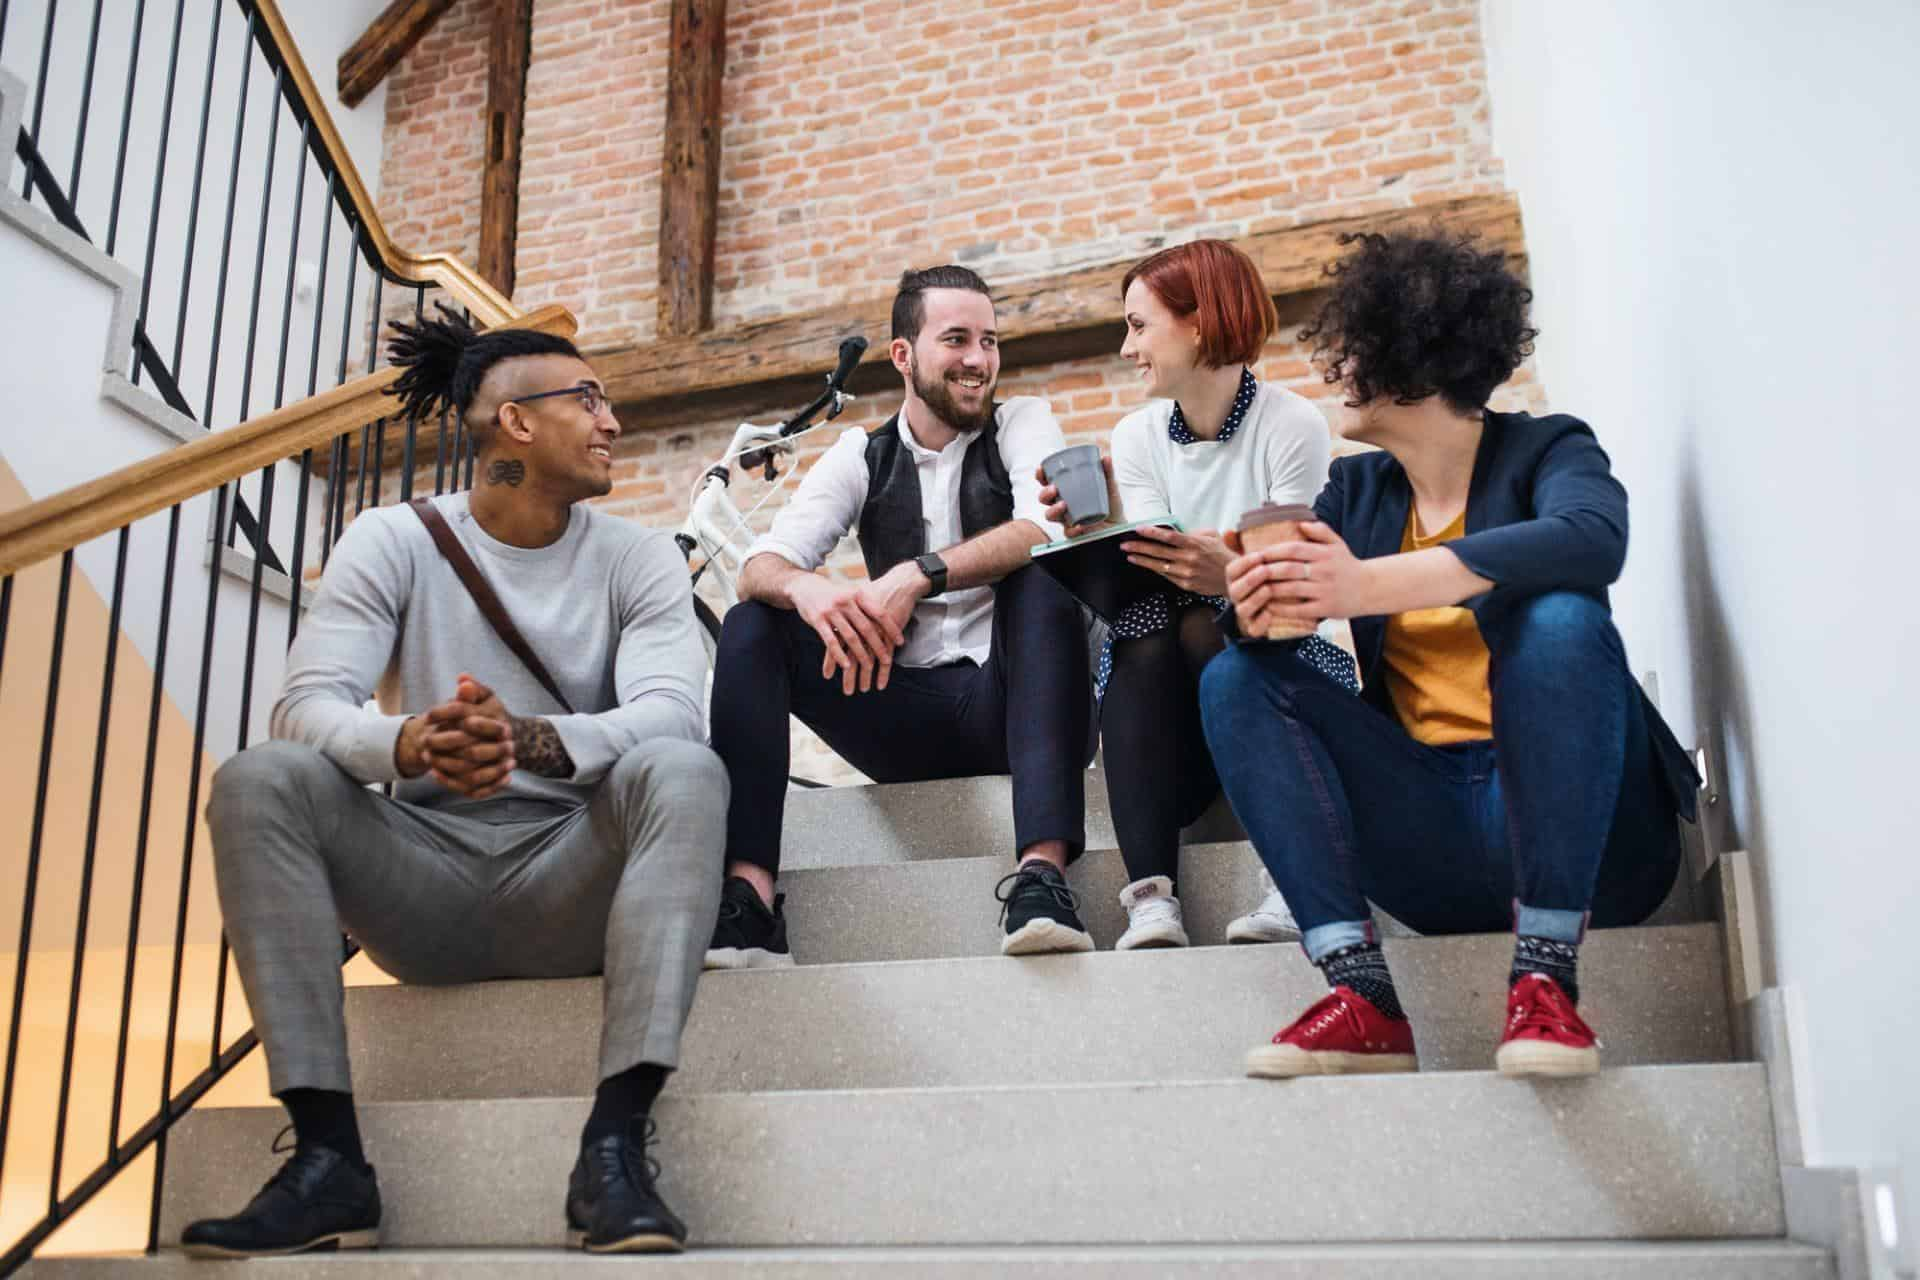 Group of young businesspeople sitting on stairs indoors, talking